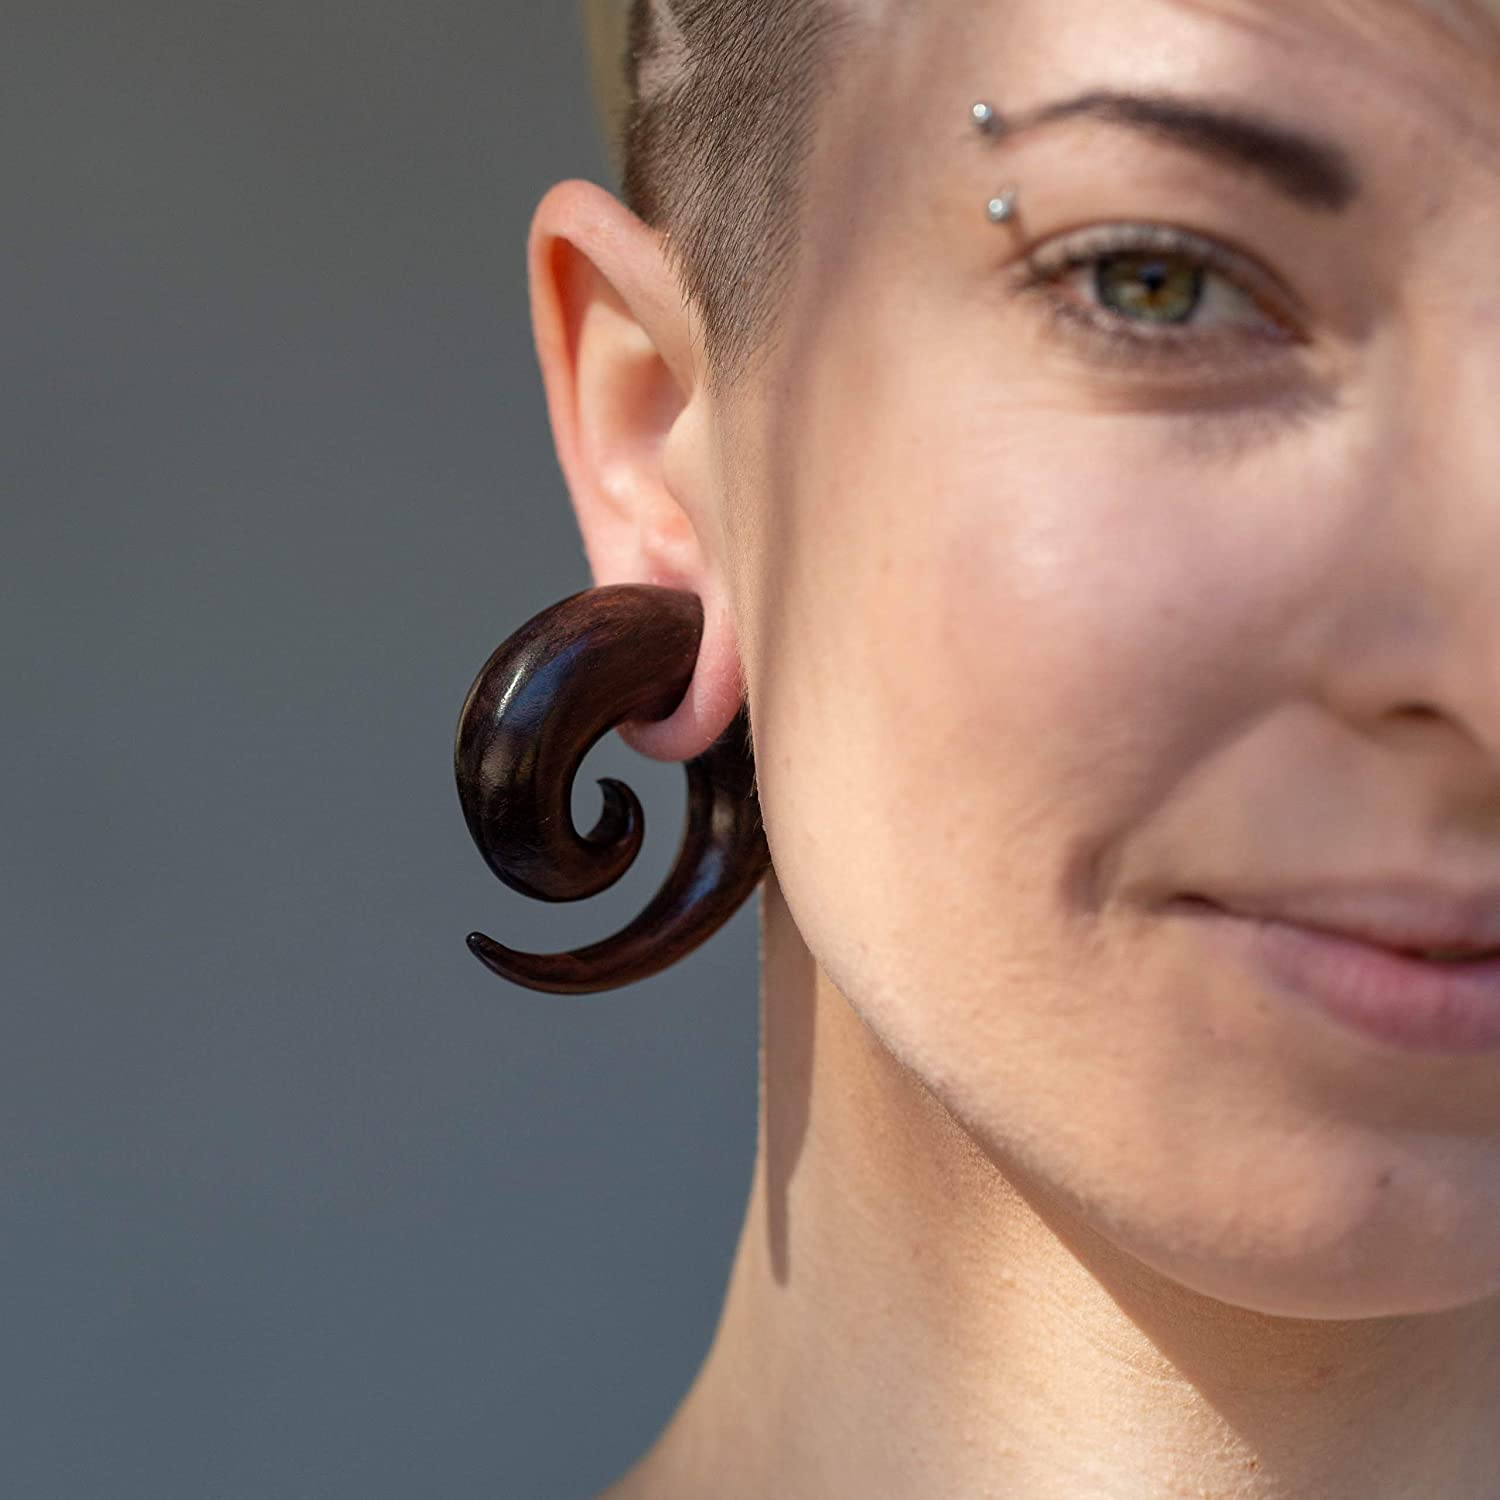 Guages or Gages Earth Accessories Spiral Taper Earrings Ear Stretching Gauges Gauges for Ears with Organic Wood - Set of Plugs Sold as Pair